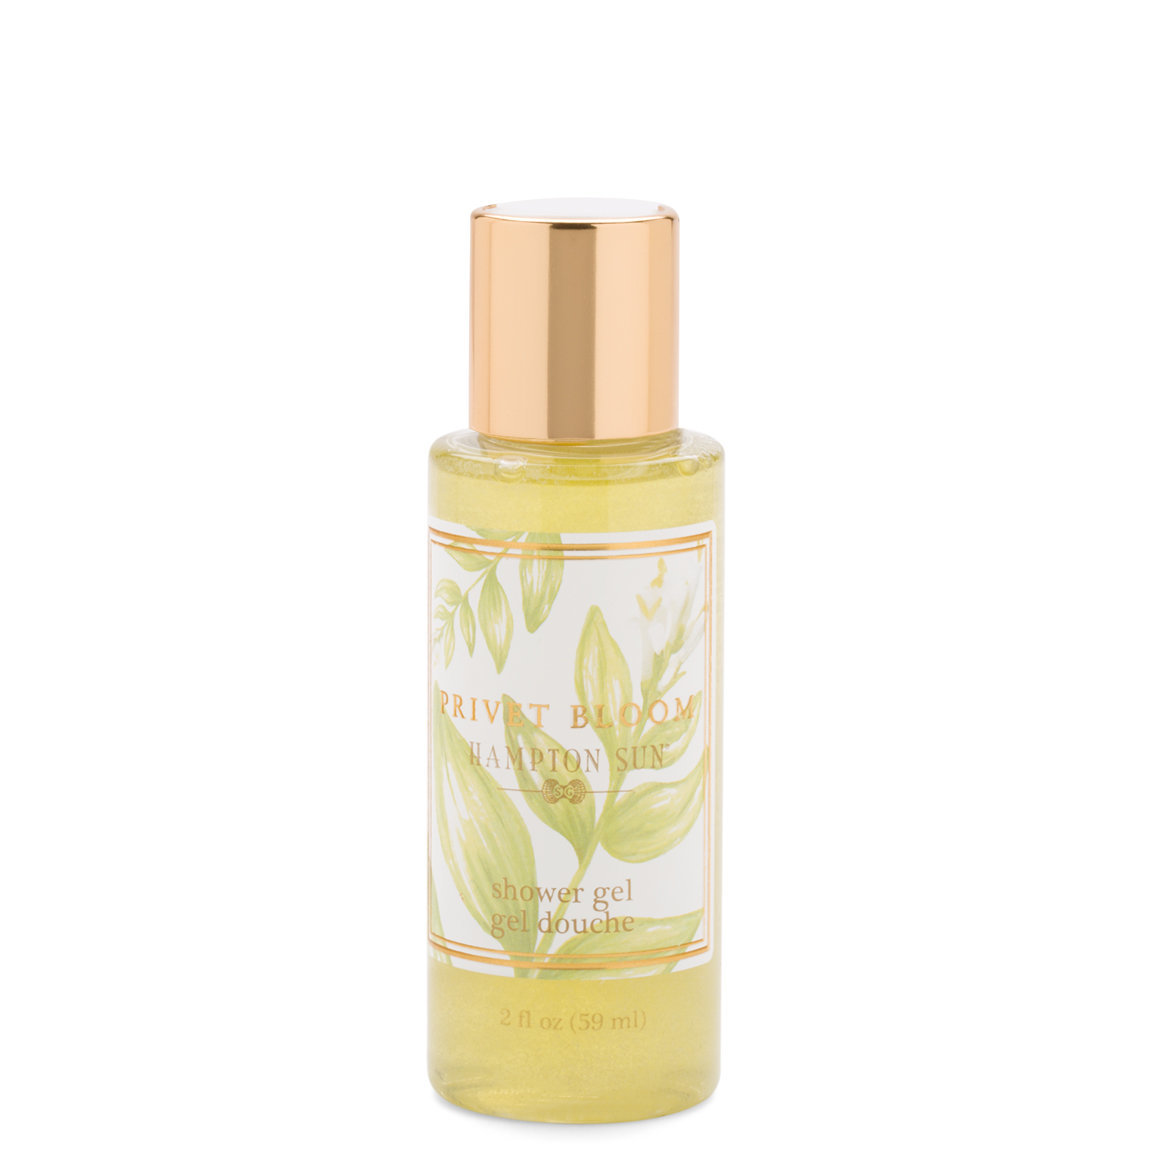 Hampton Sun Privet Bloom Shower Gel 2 oz product smear.